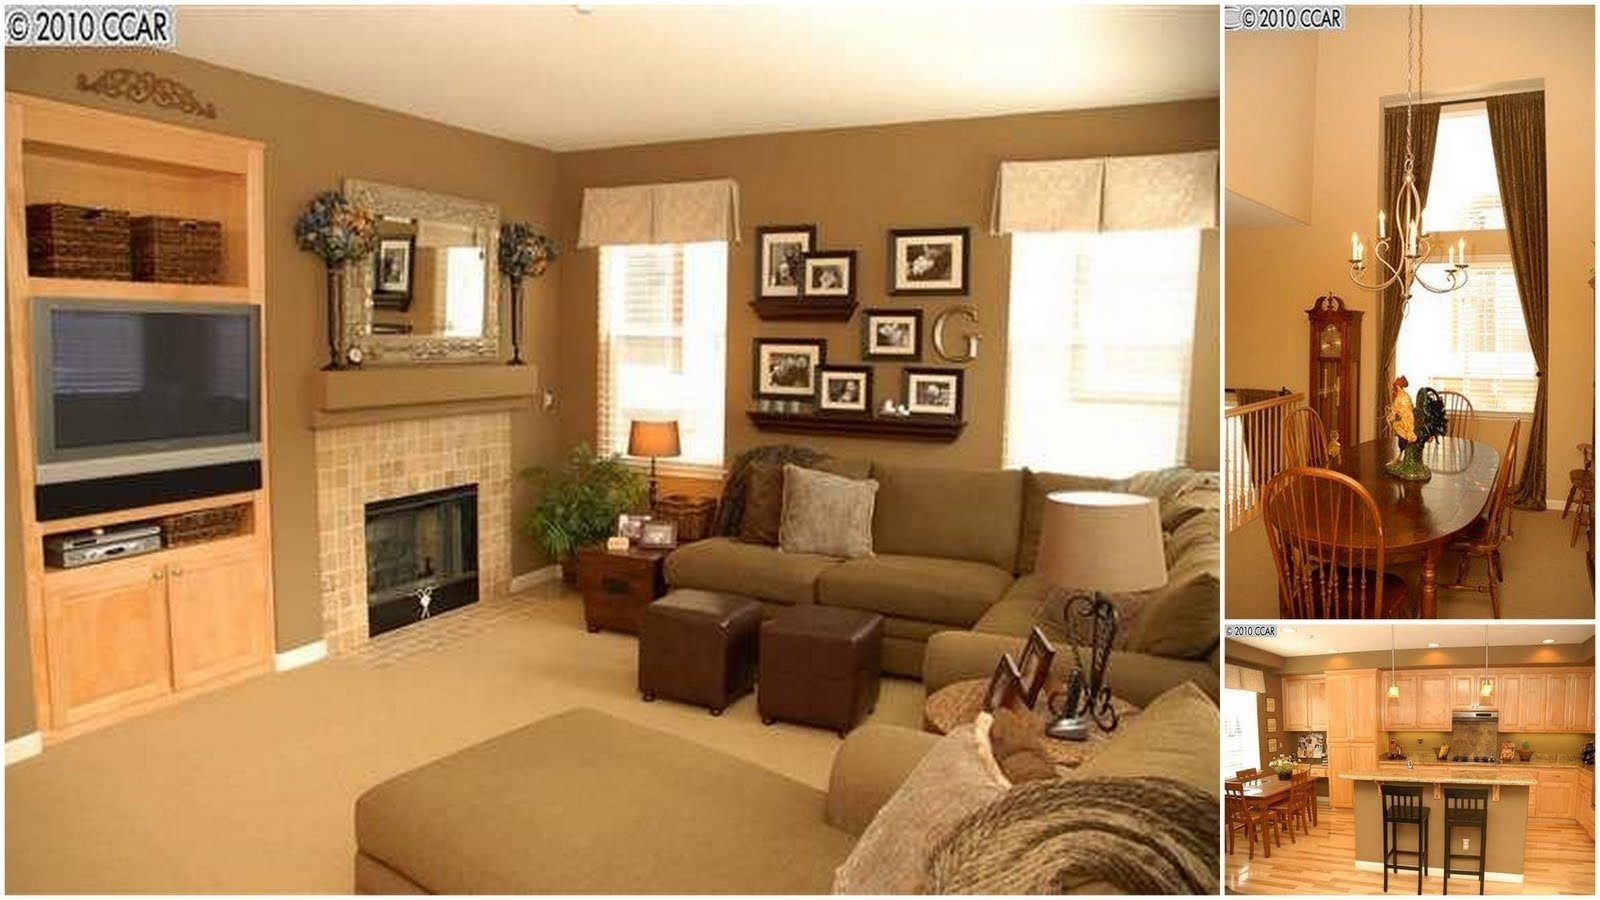 10 Nice Paint Color Ideas For Family Room perfect paint color ideas for family room home design with basement 2020